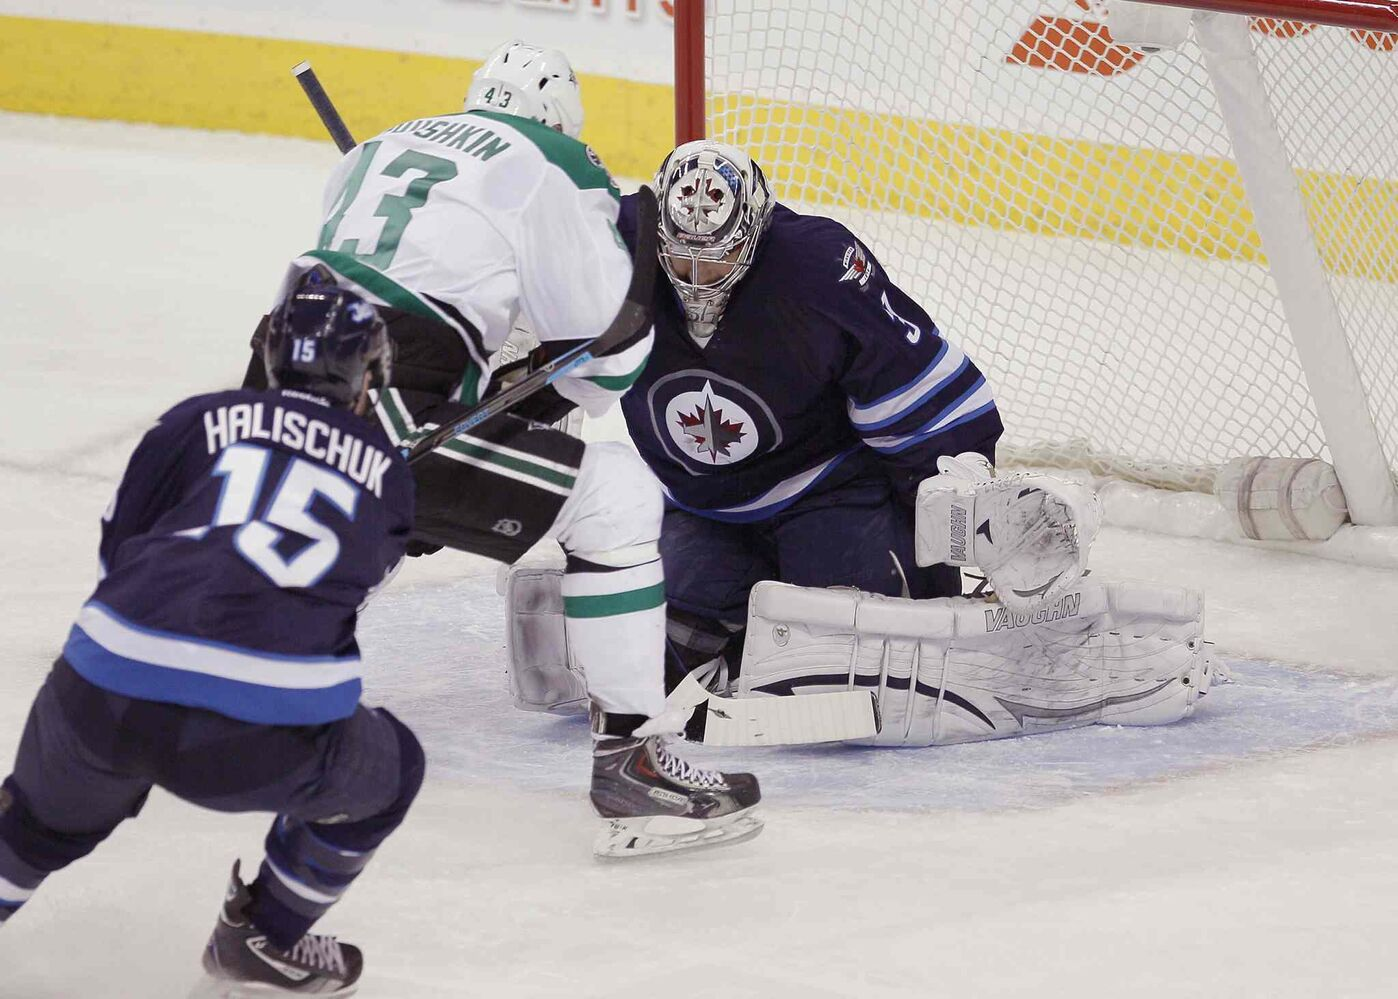 Dallas Stars forward Valeri Nichushkin (top) scores on Winnipeg Jets goaltender Ondrej Pavelec (right) during the first period as Matt Halischuk gives chase. (JOHN WOODS / THE CANADIAN PRESS)